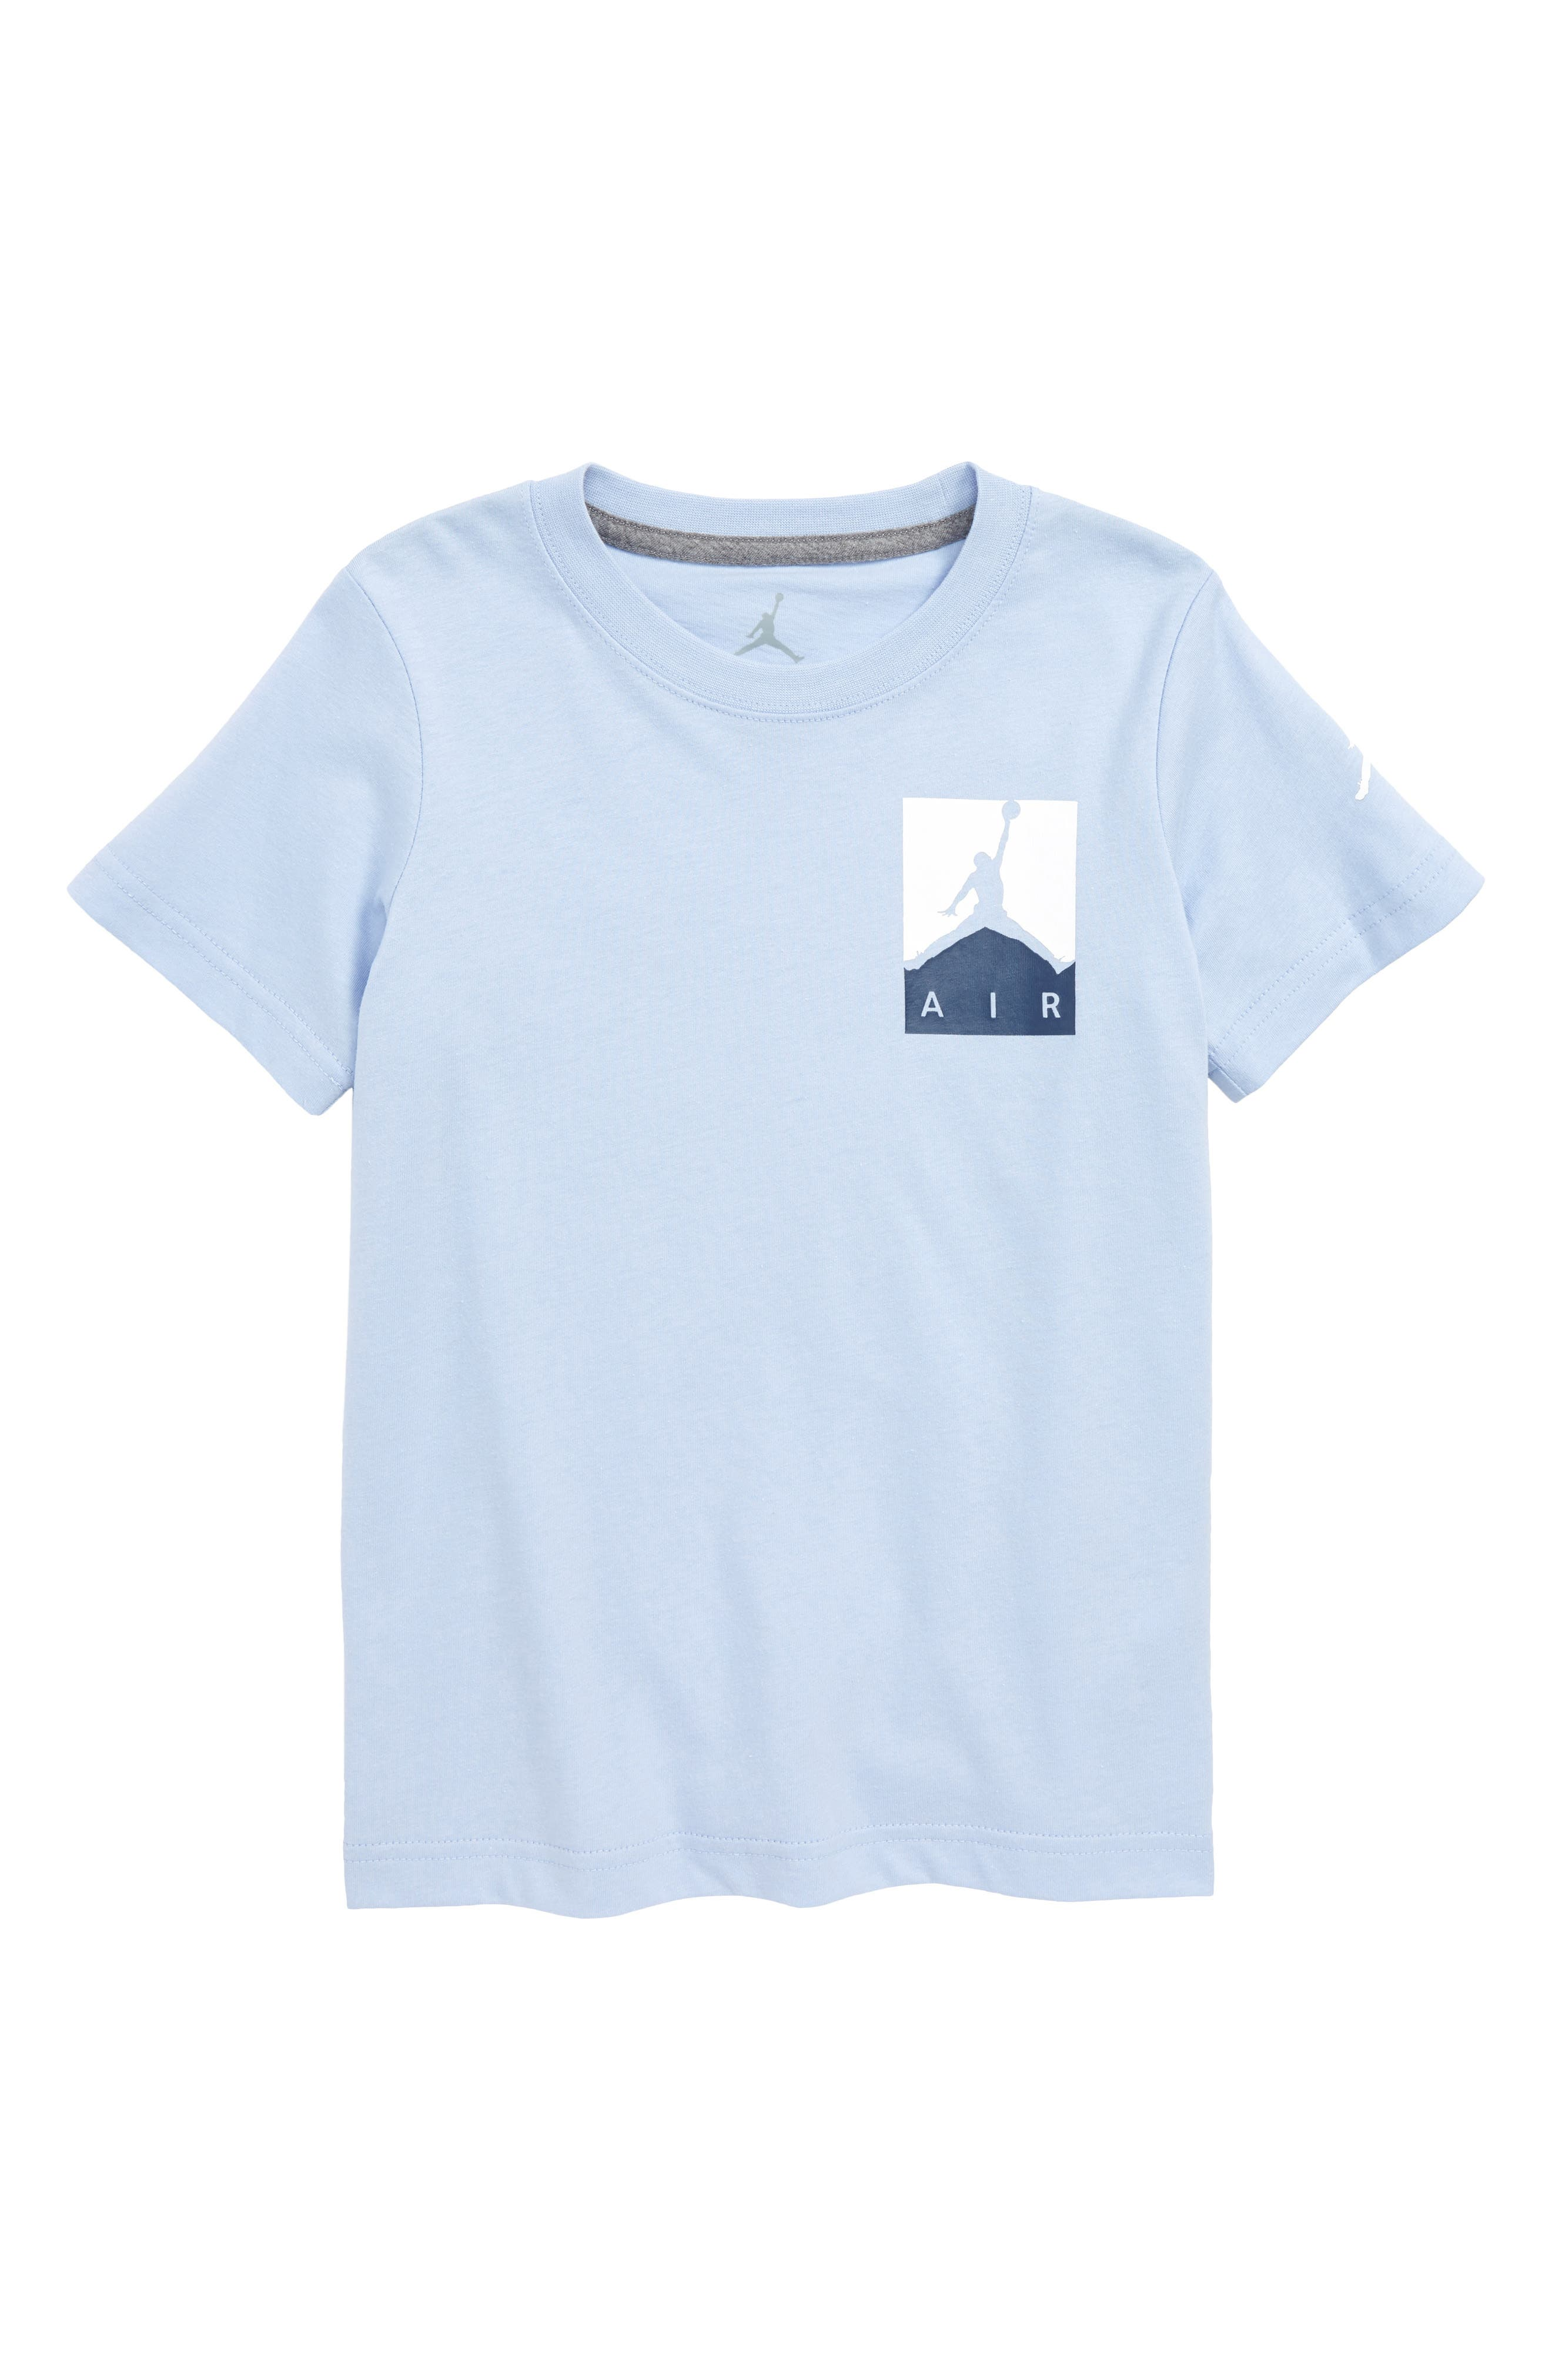 Racked Up Graphic T-Shirt,                         Main,                         color, 451